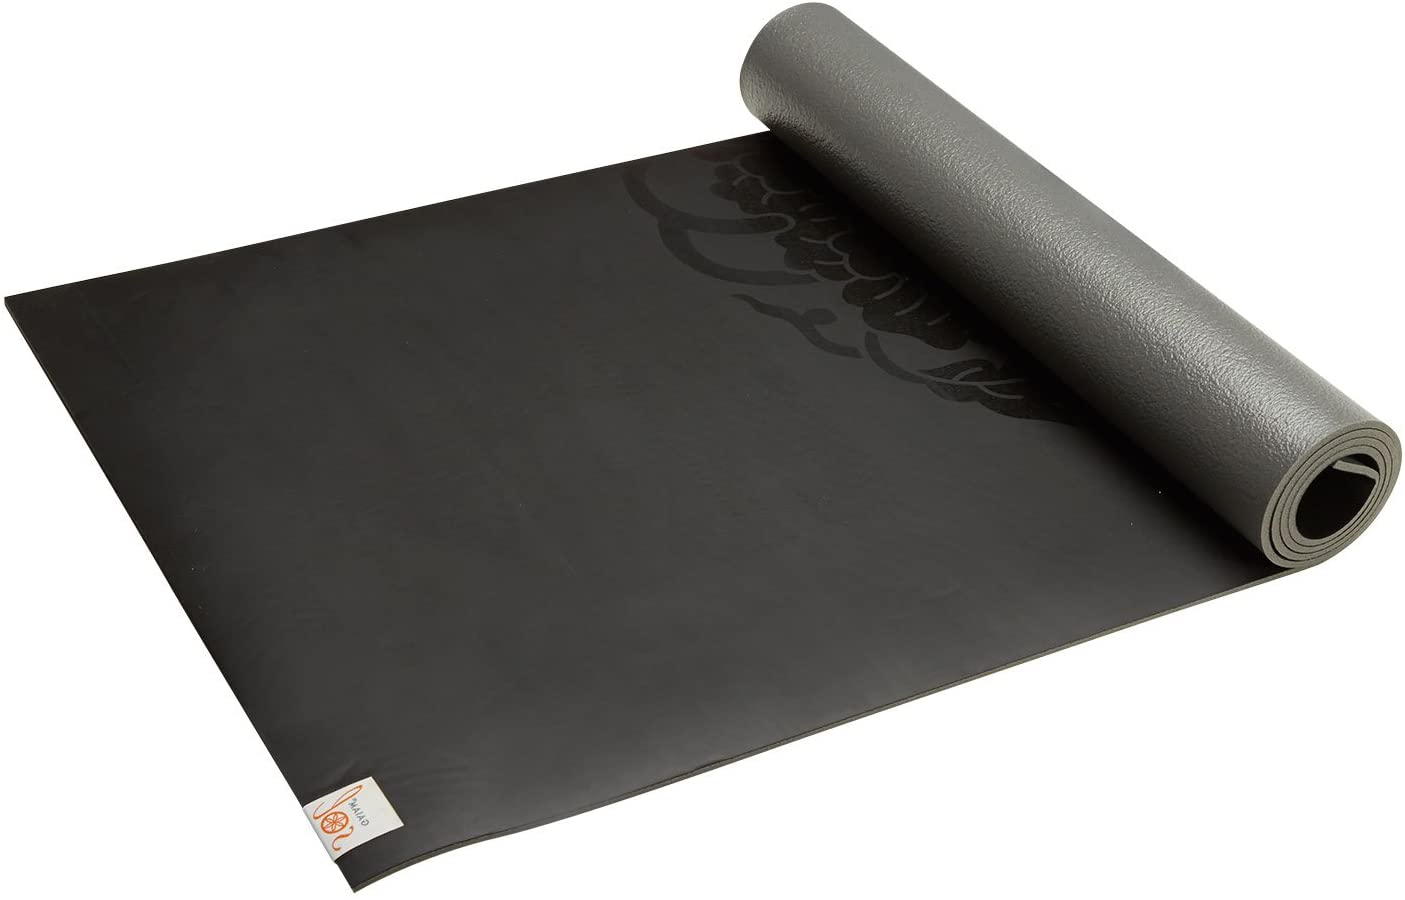 Gaiam Sol Yoga Mat